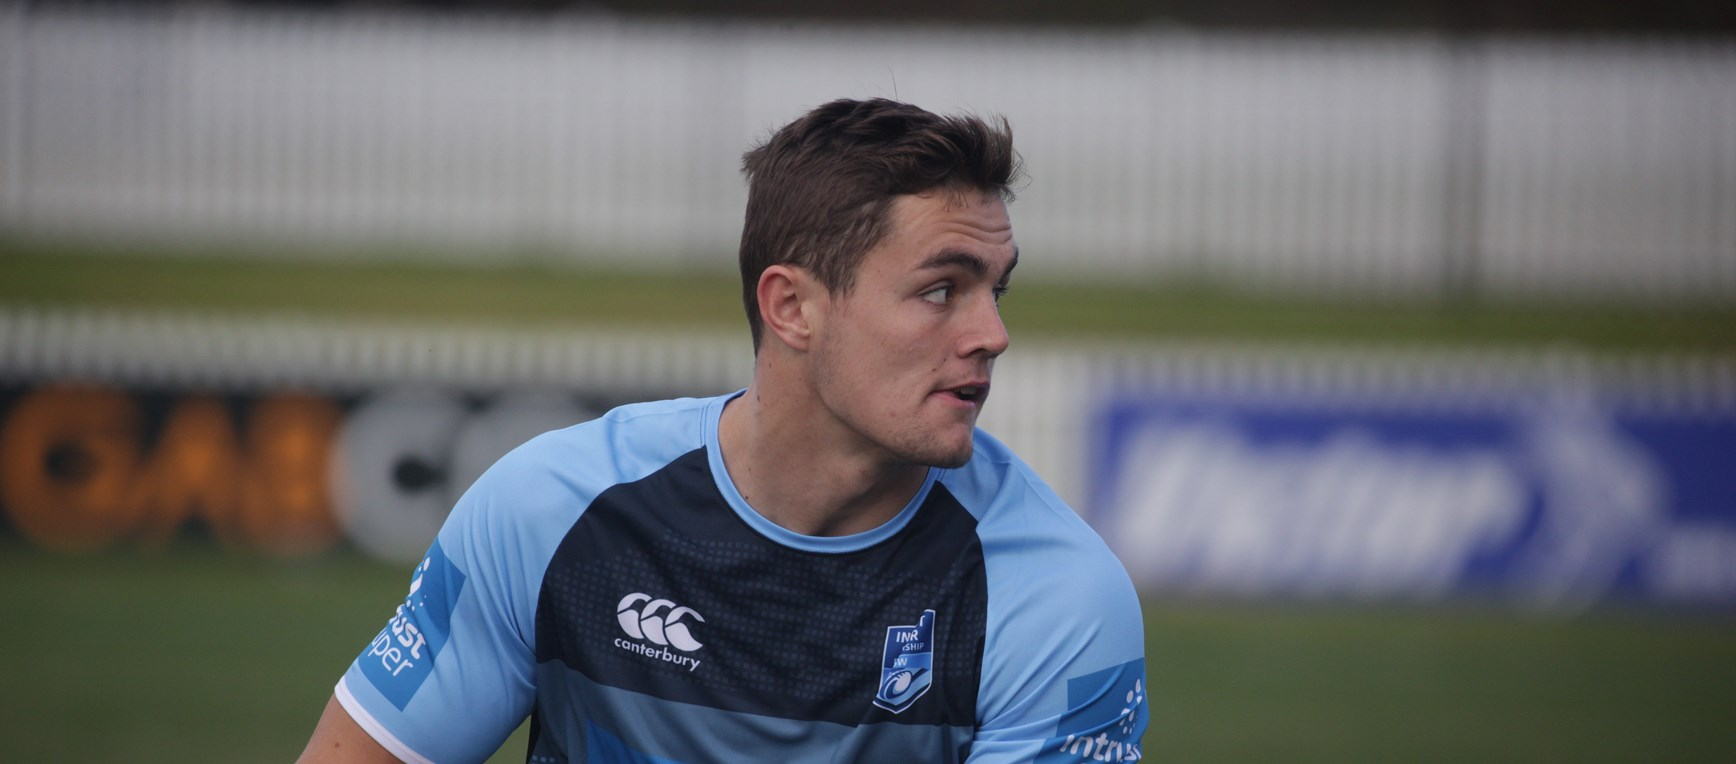 GALLERY | Intrust Super NSW Residents Training